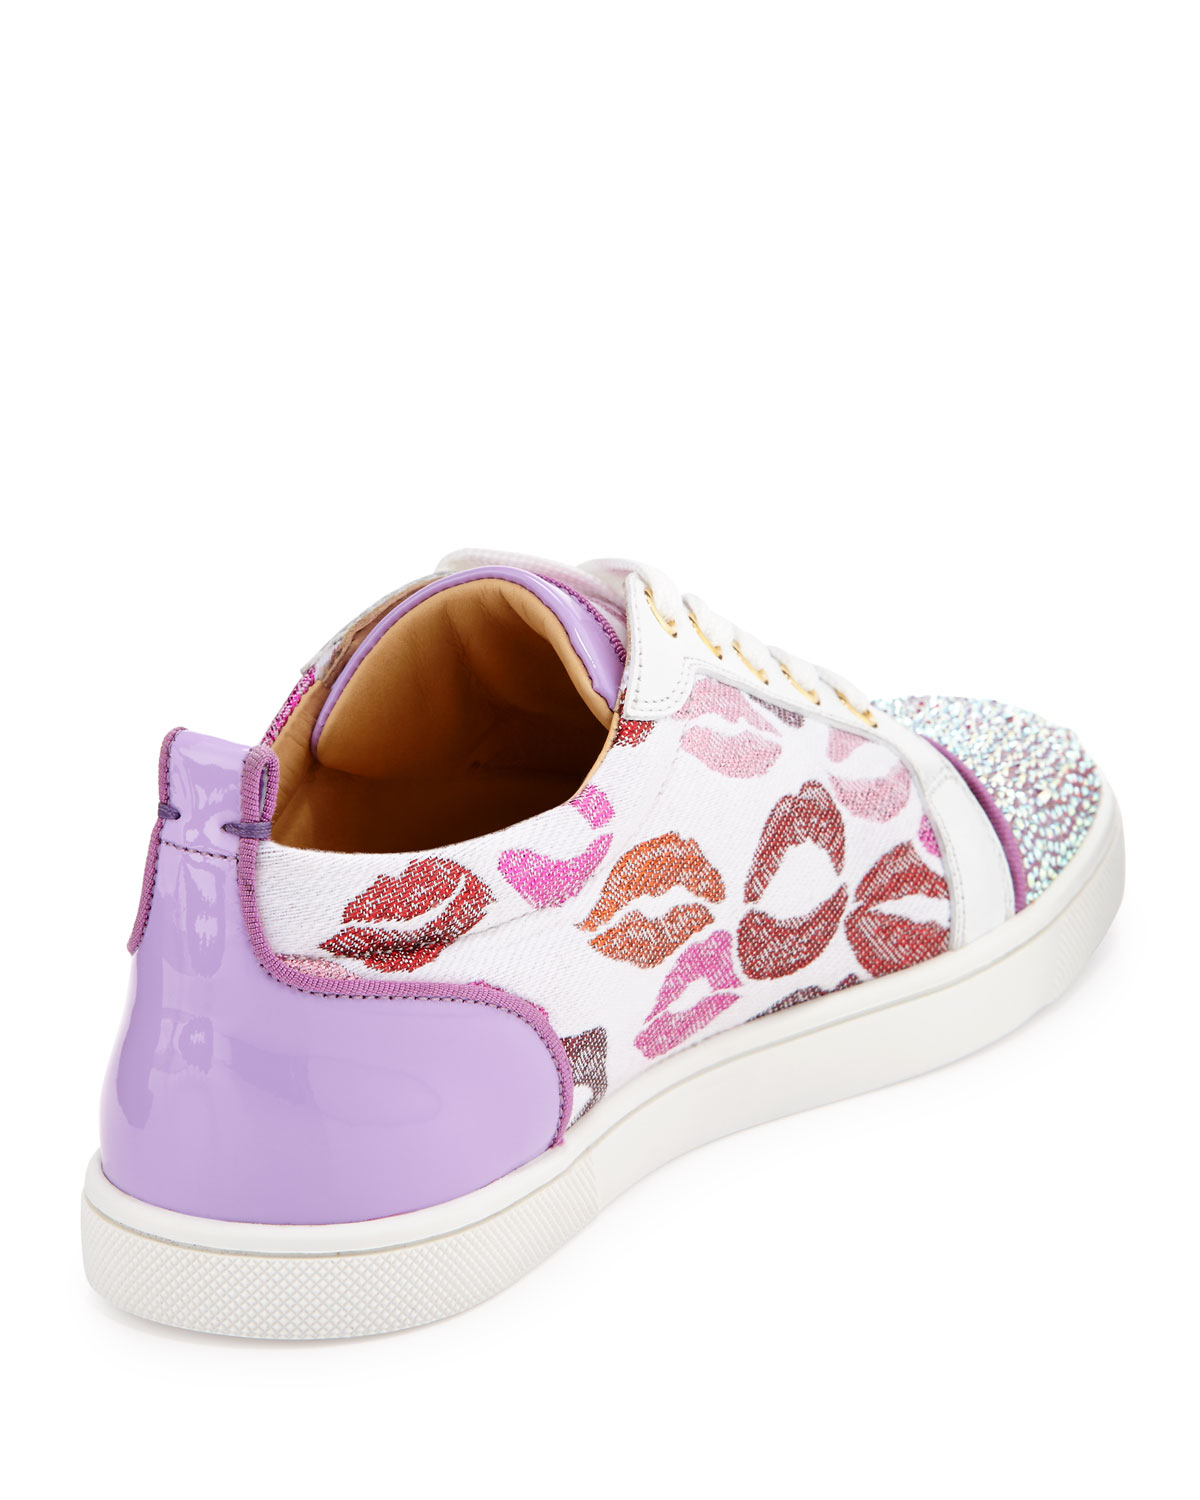 christian louboutin imitations - Christian louboutin Gondolastrass Lip-print Low-top Sneaker in ...